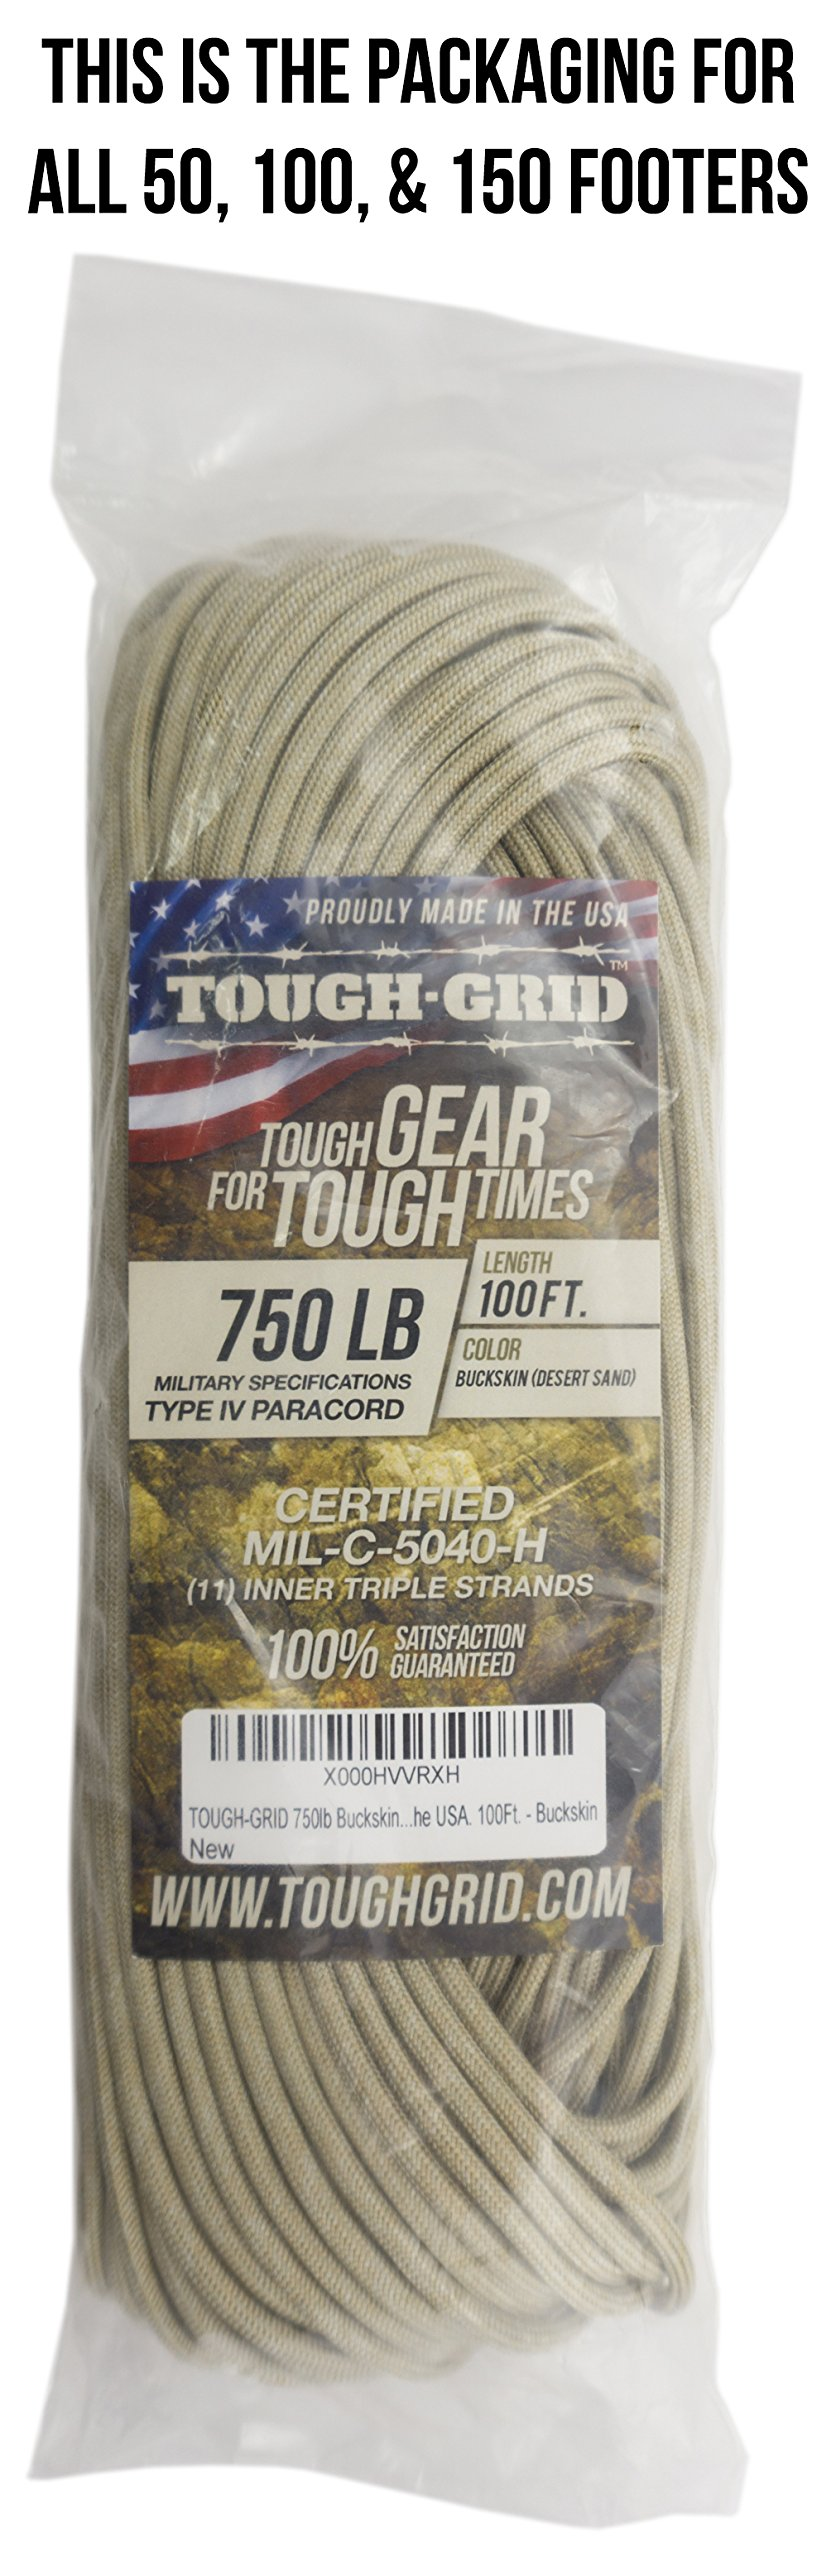 TOUGH-GRID 750lb Buckskin (Desert Sand) Paracord/Parachute Cord - Genuine Mil Spec Type IV 750lb Paracord Used by The US Military (MIl-C-5040-H) - 100% Nylon - Made in The USA. 500Ft. - Buckskin by TOUGH-GRID (Image #5)